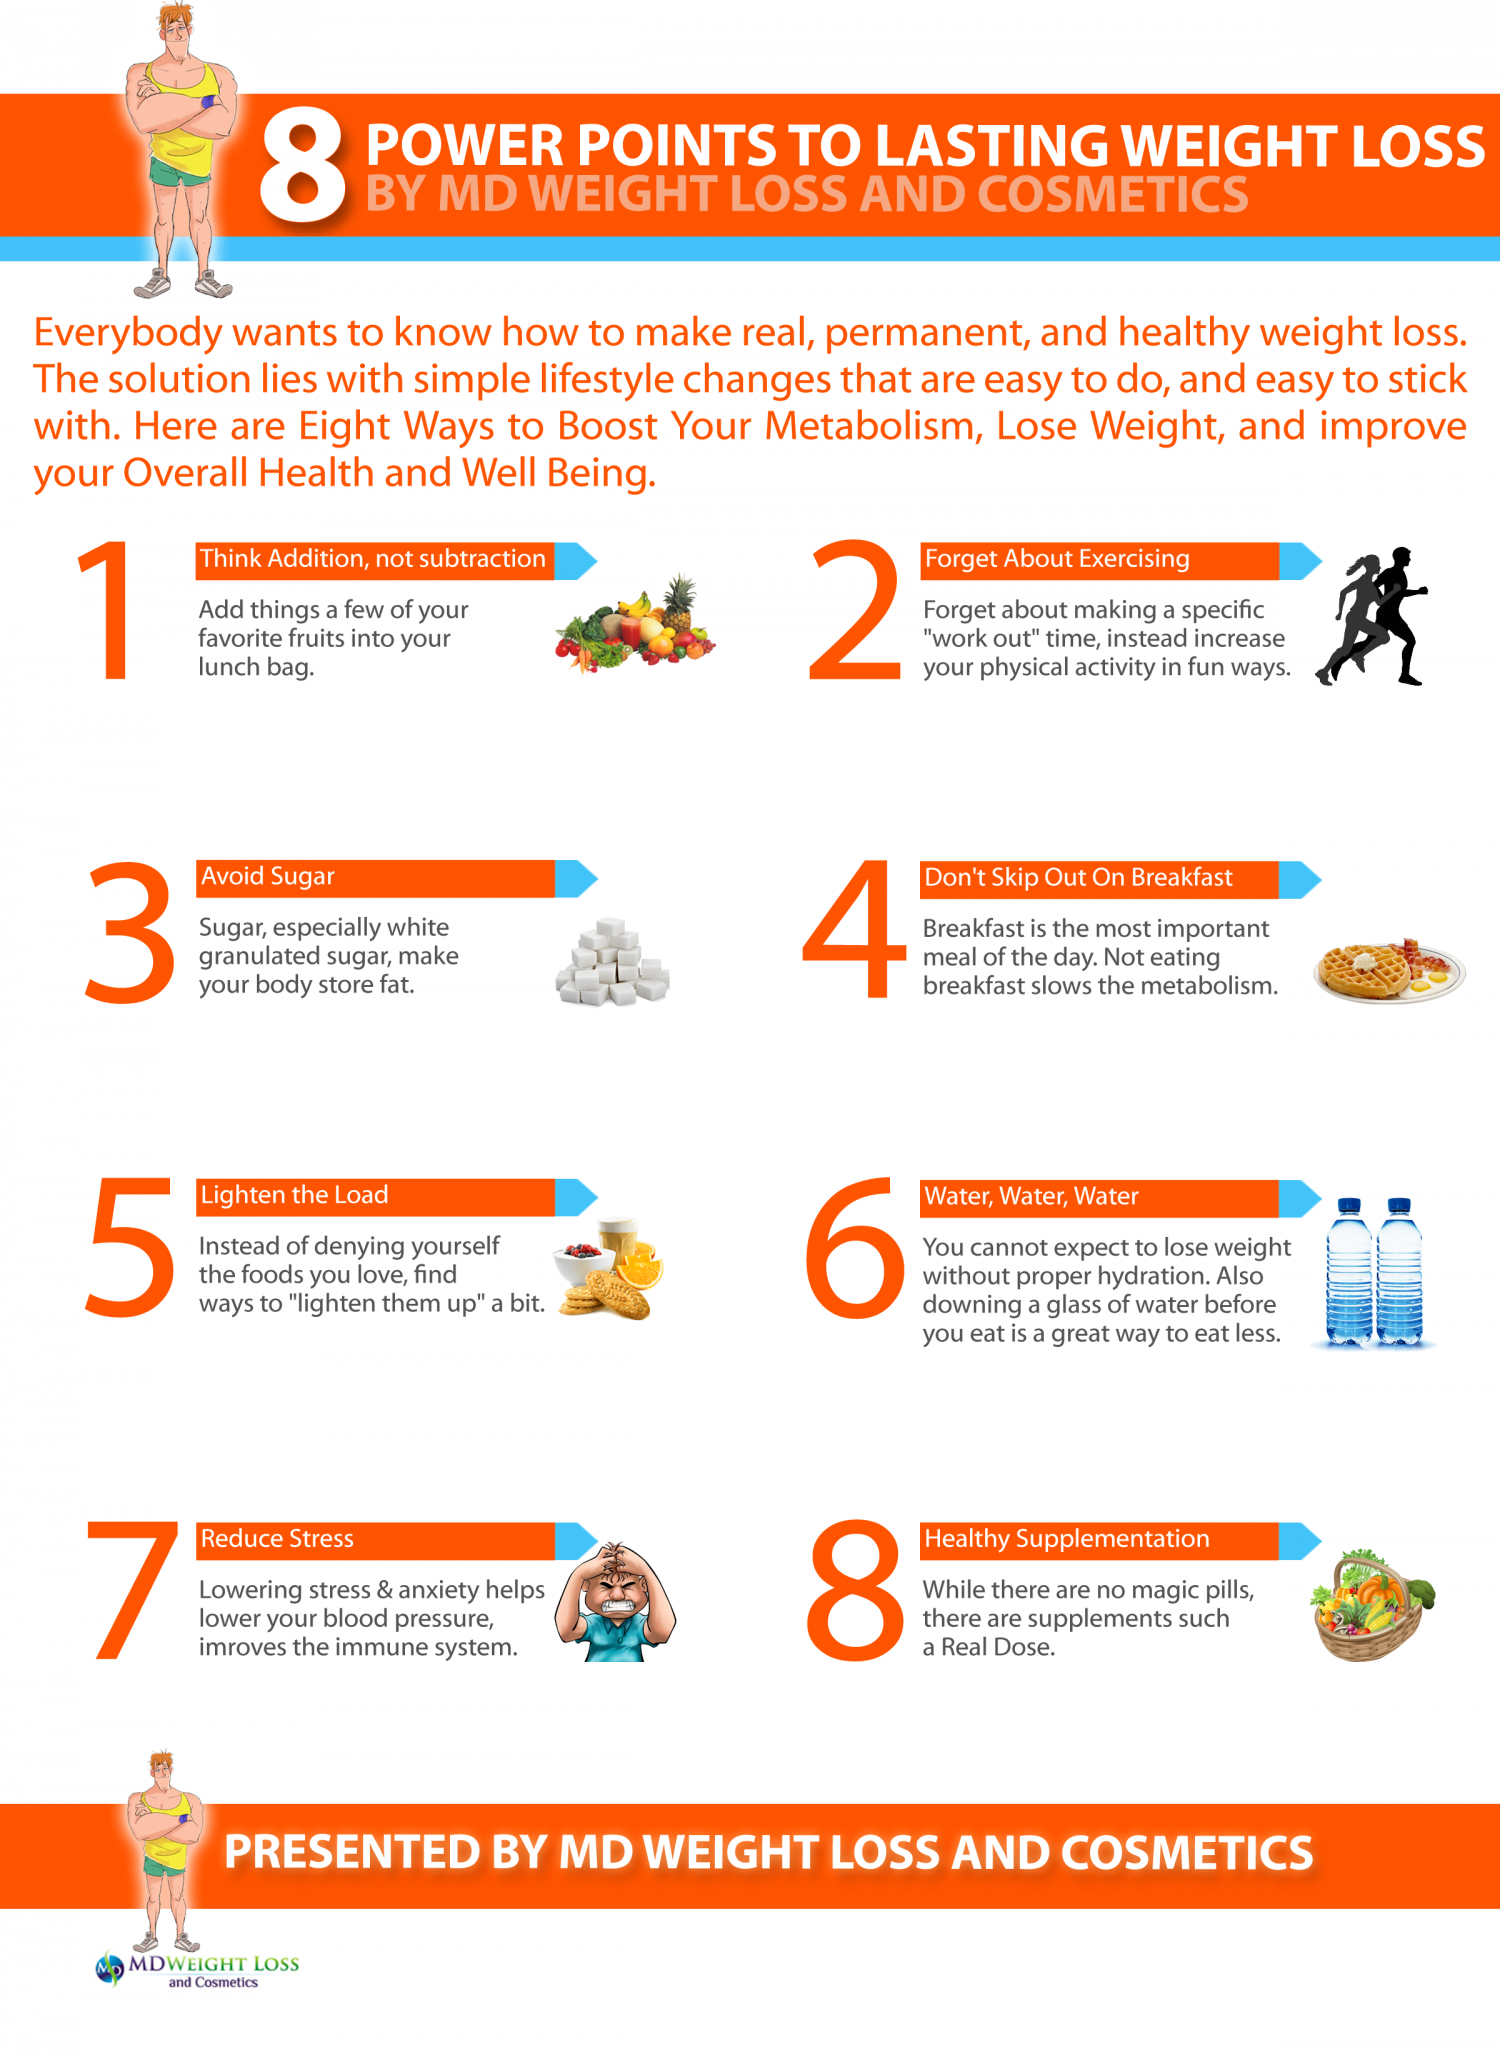 8 Power Points to Lasting Weight Loss Infographic